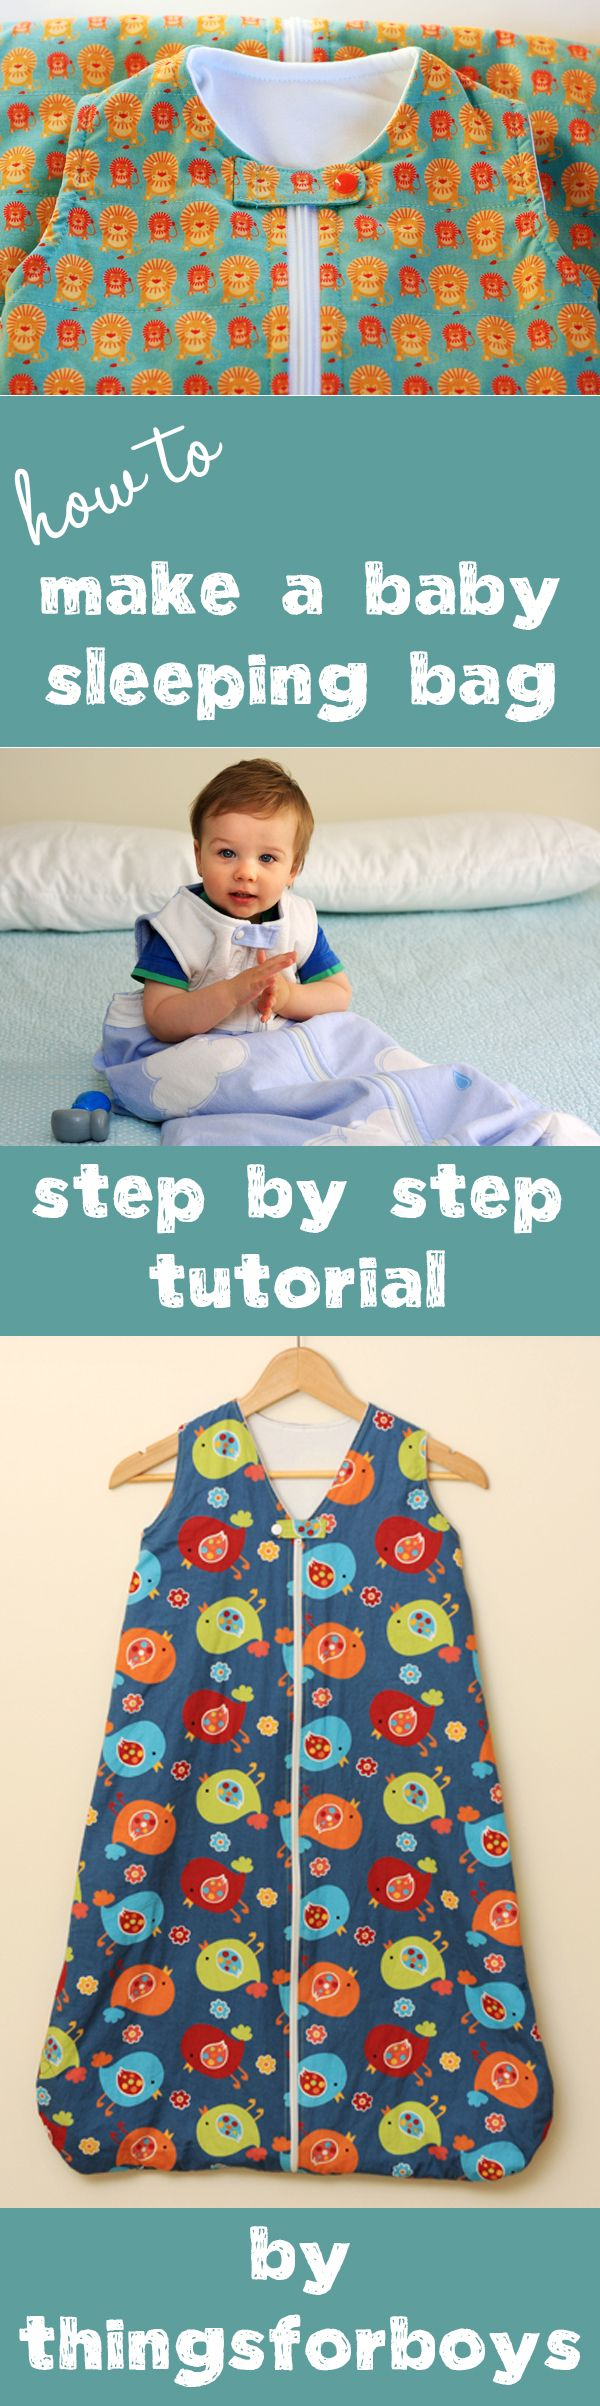 2289 best images about Baby ,kids quilts on Pinterest ...